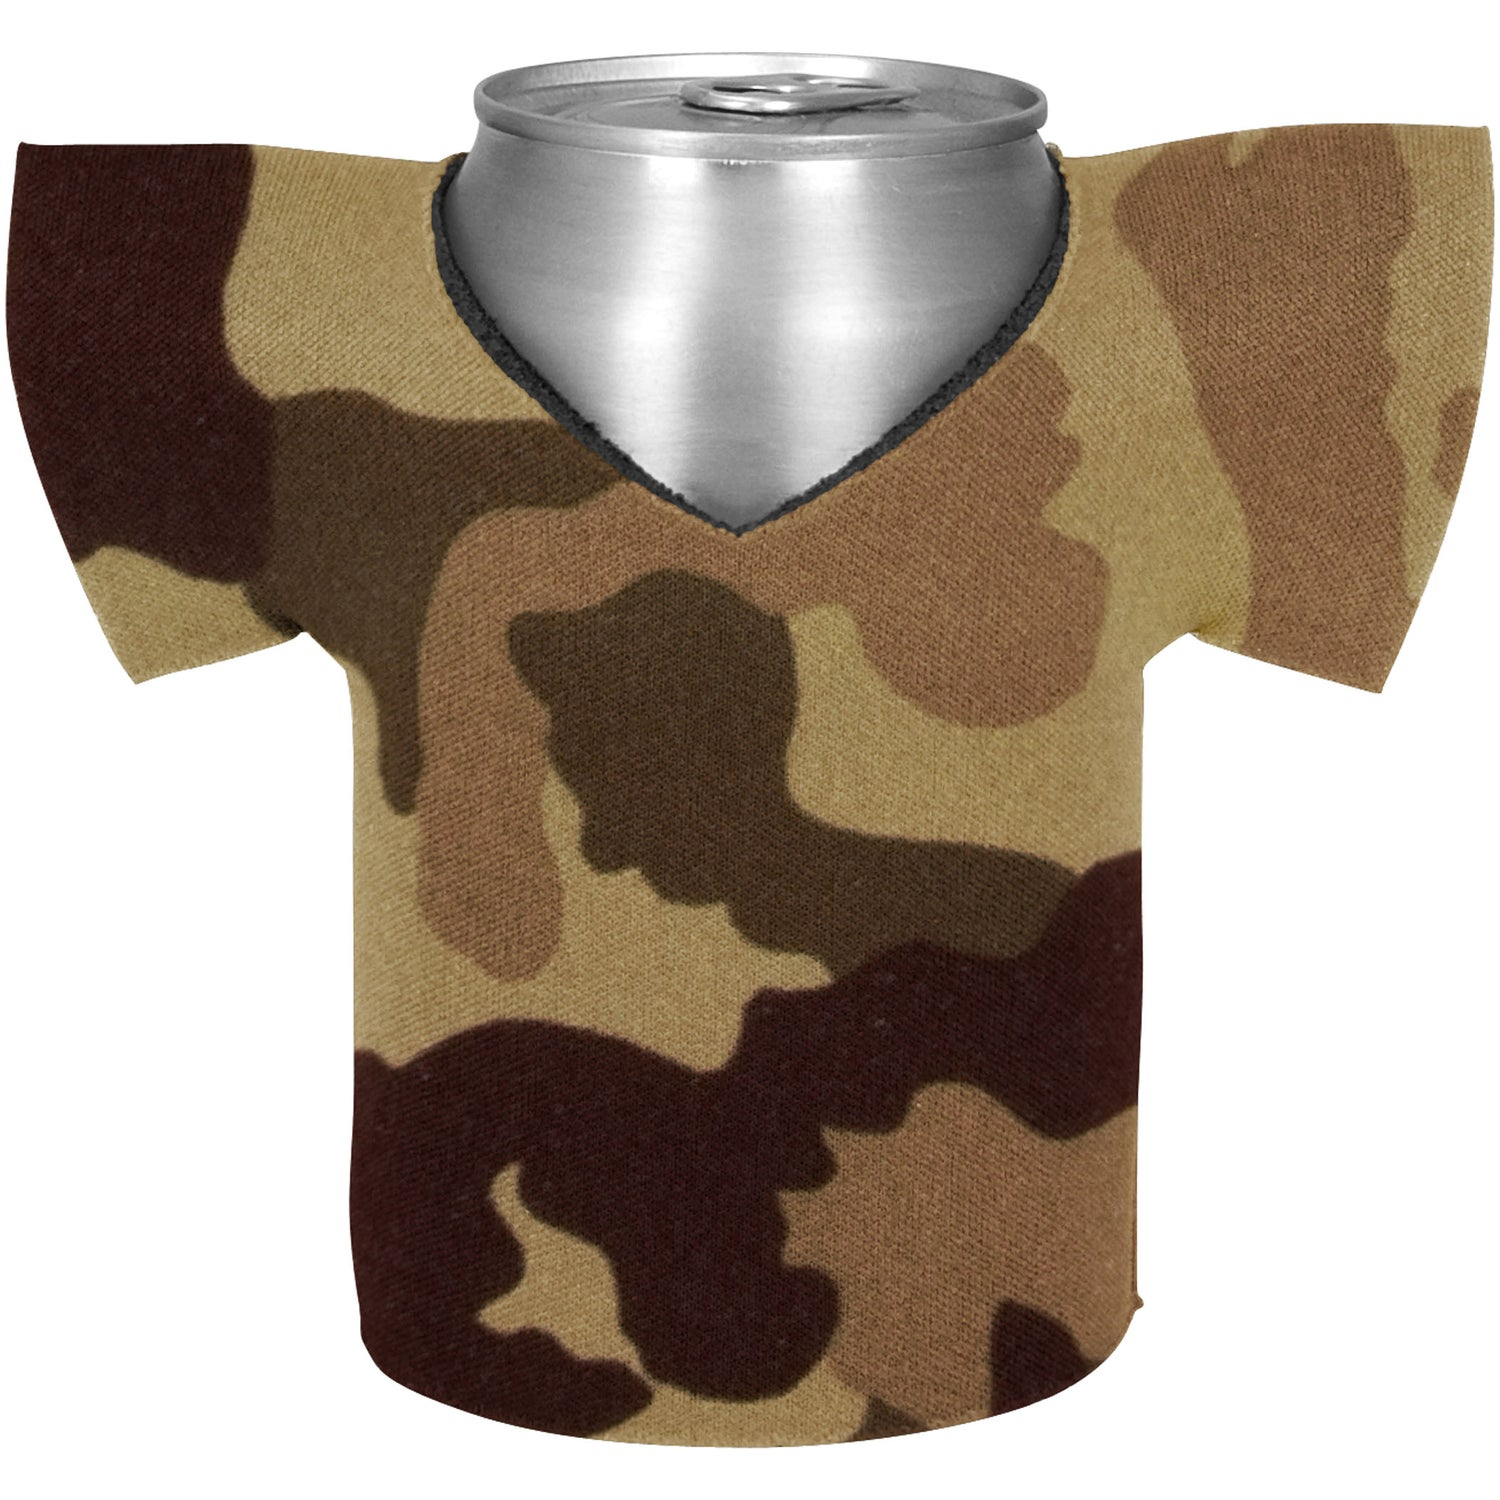 Shirt coolie personalized koozies ea for Shirts and apparel koozie